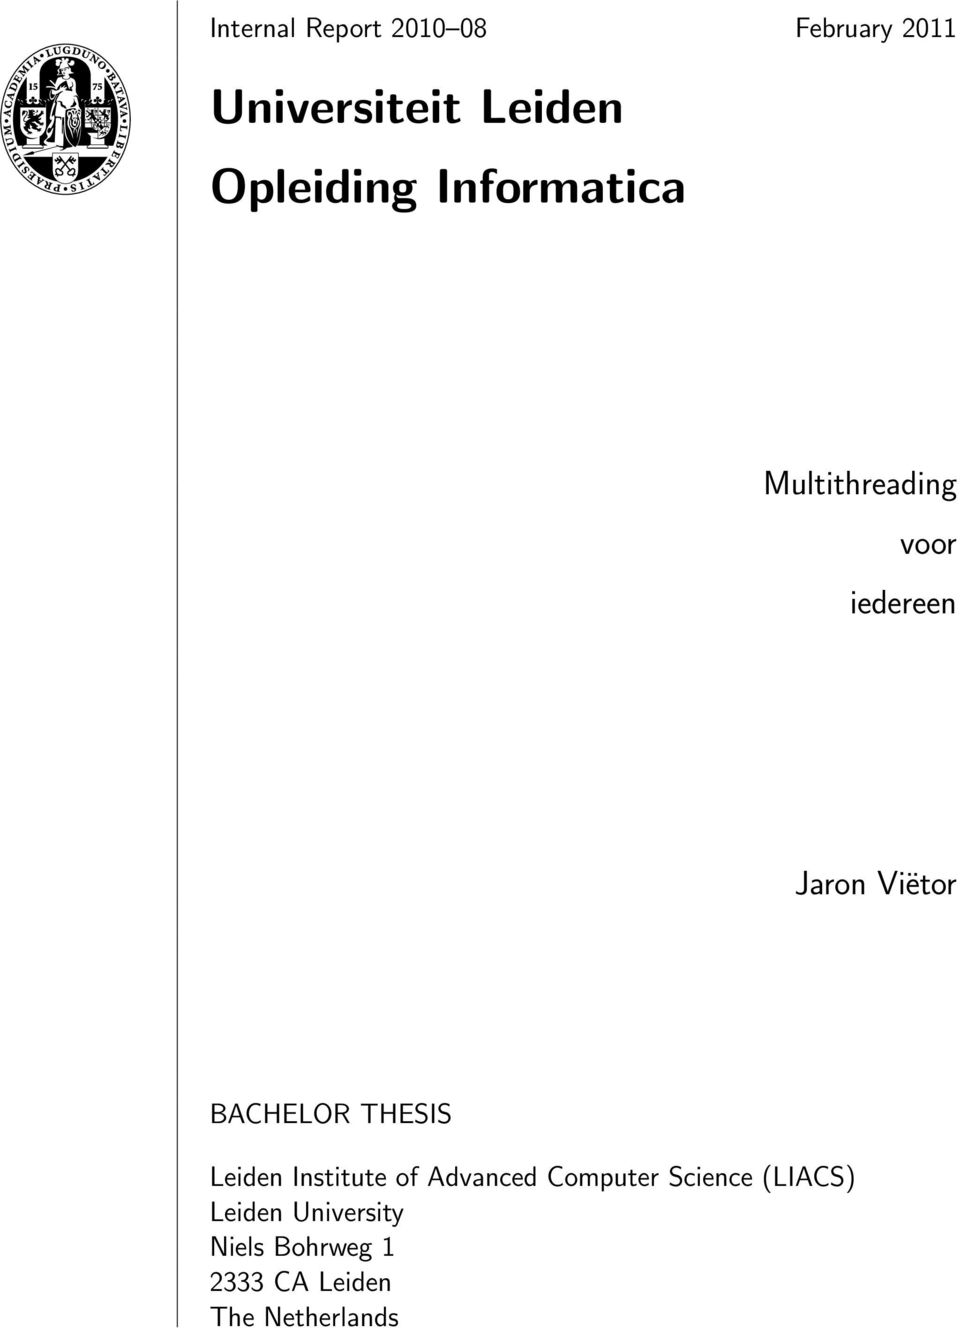 BACHELOR THESIS Leiden Institute of Advanced Computer Science